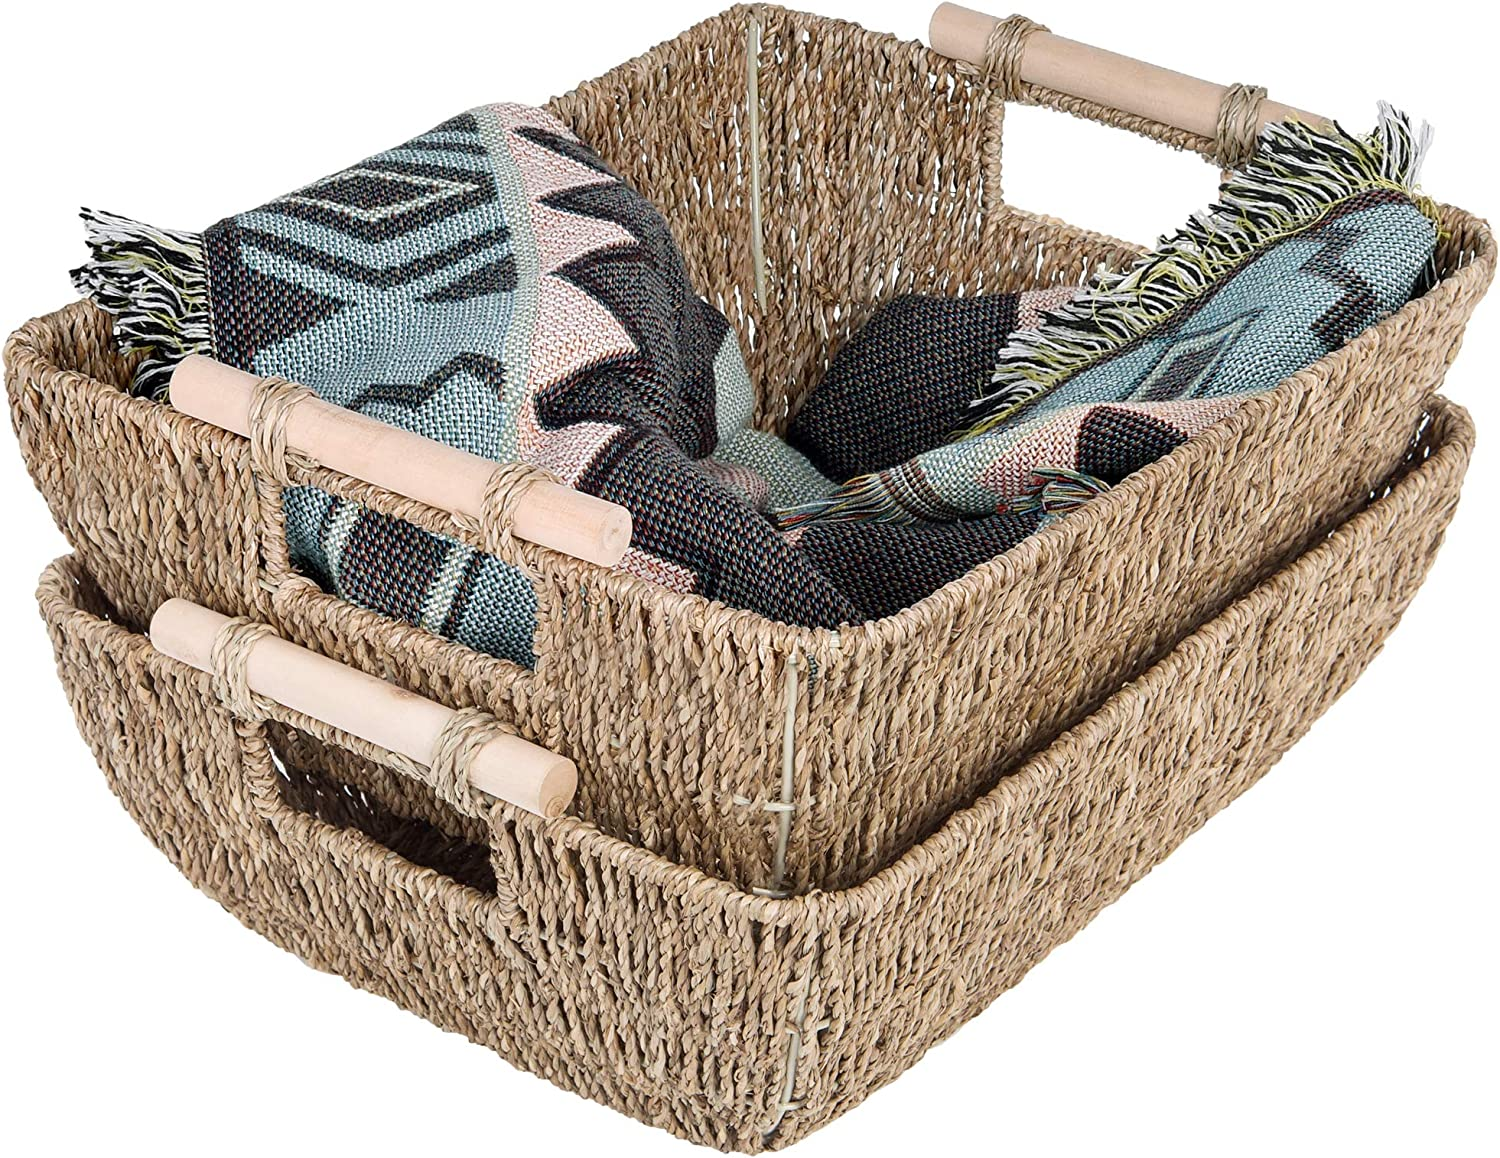 """StorageWorks Hand-Woven Jumbo Storage Baskets with Wooden Handles, Seagrass Wicker Baskets for Organizing, 16.9"""" x 13"""" x 6"""", 2-Pack"""